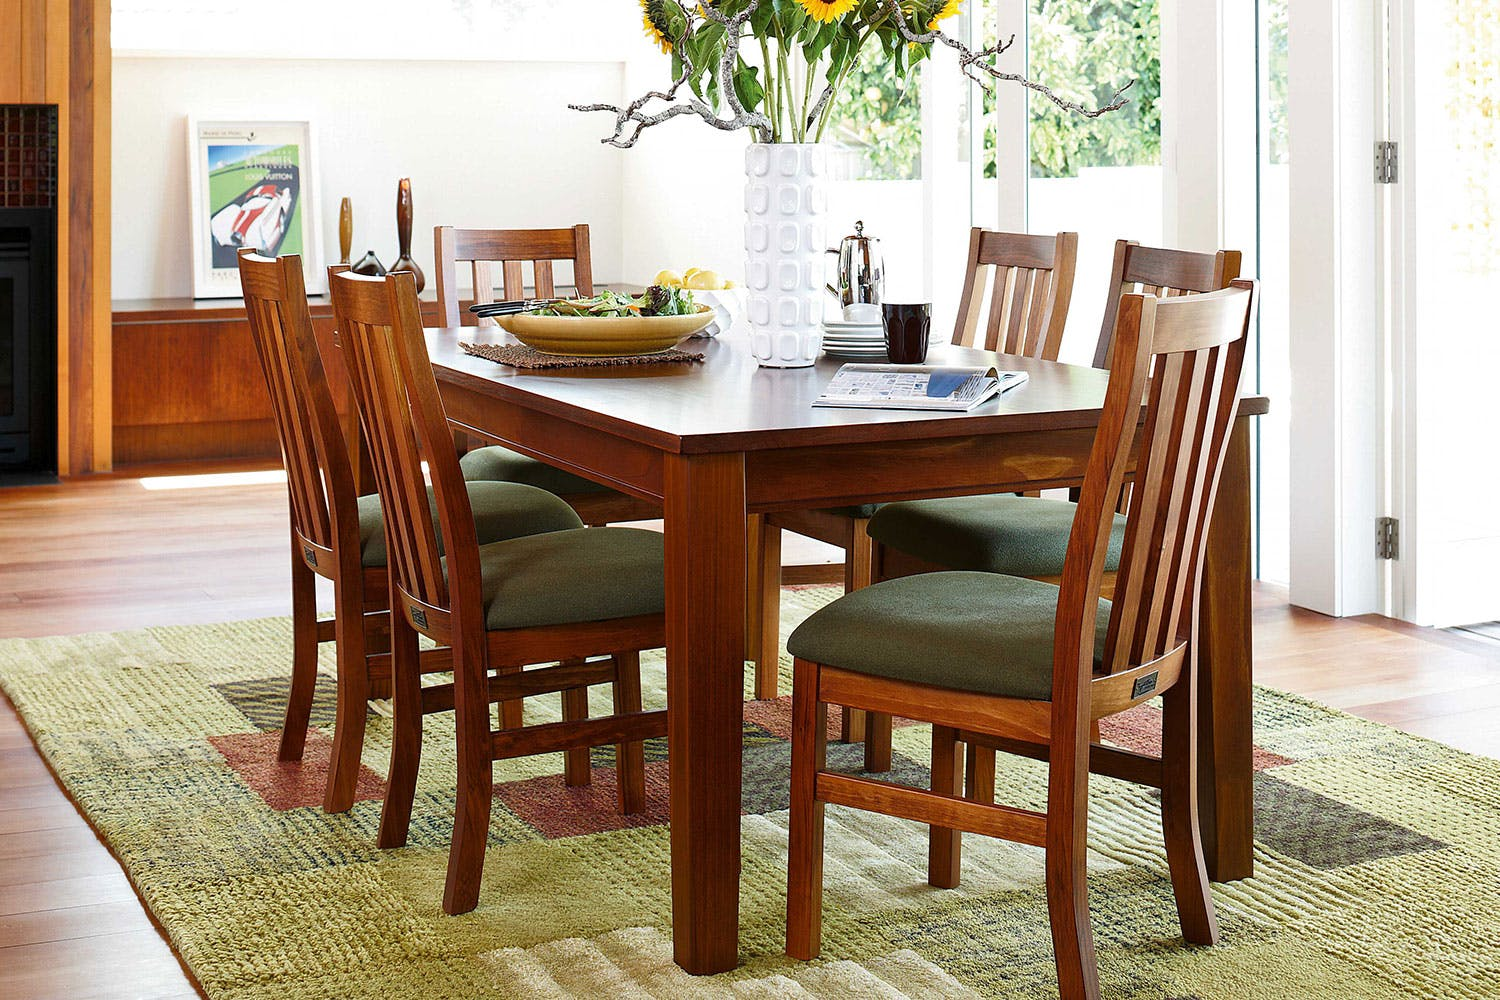 Ferngrove 7 Pce Dining Chair